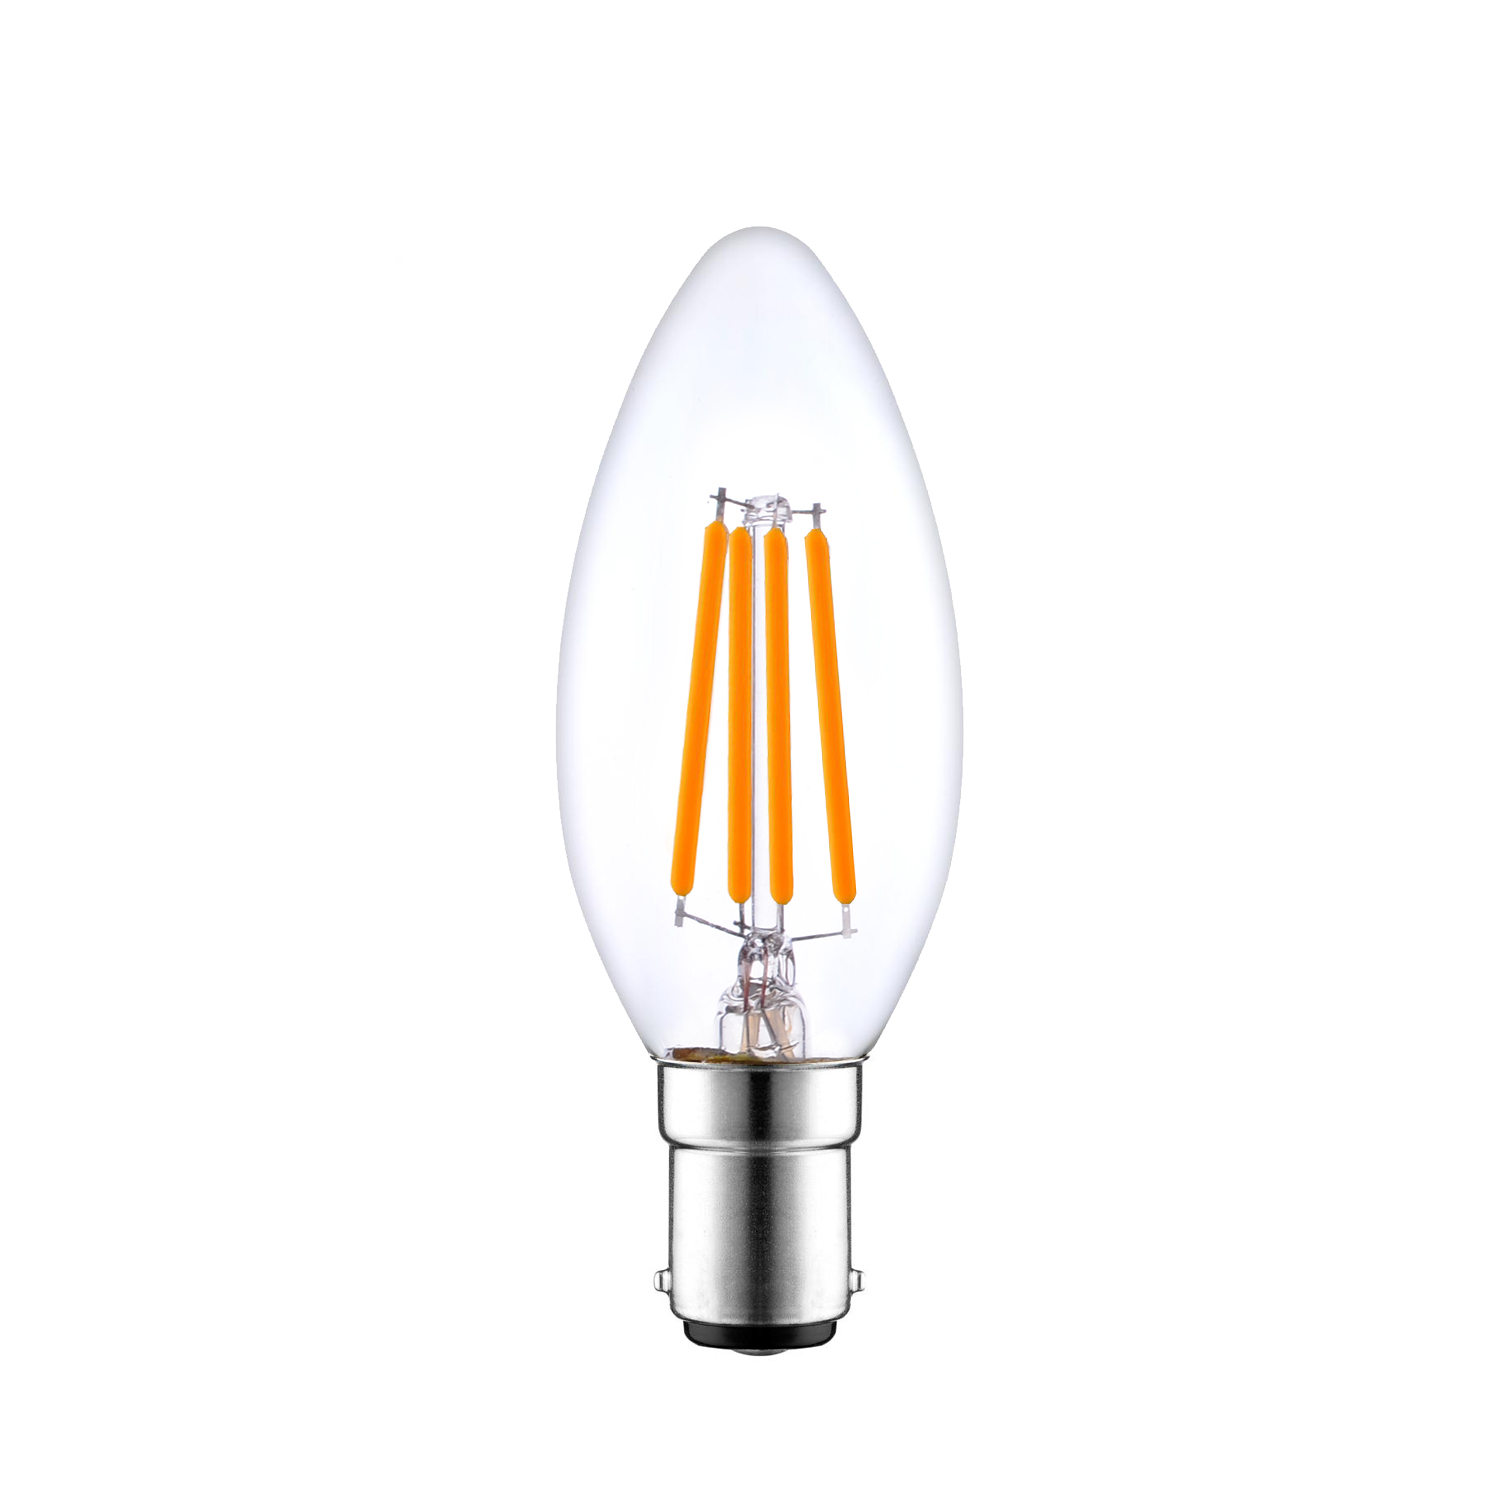 B15 Dimmable Led Candle Bulb Filament Venusop Led Light Bulbs